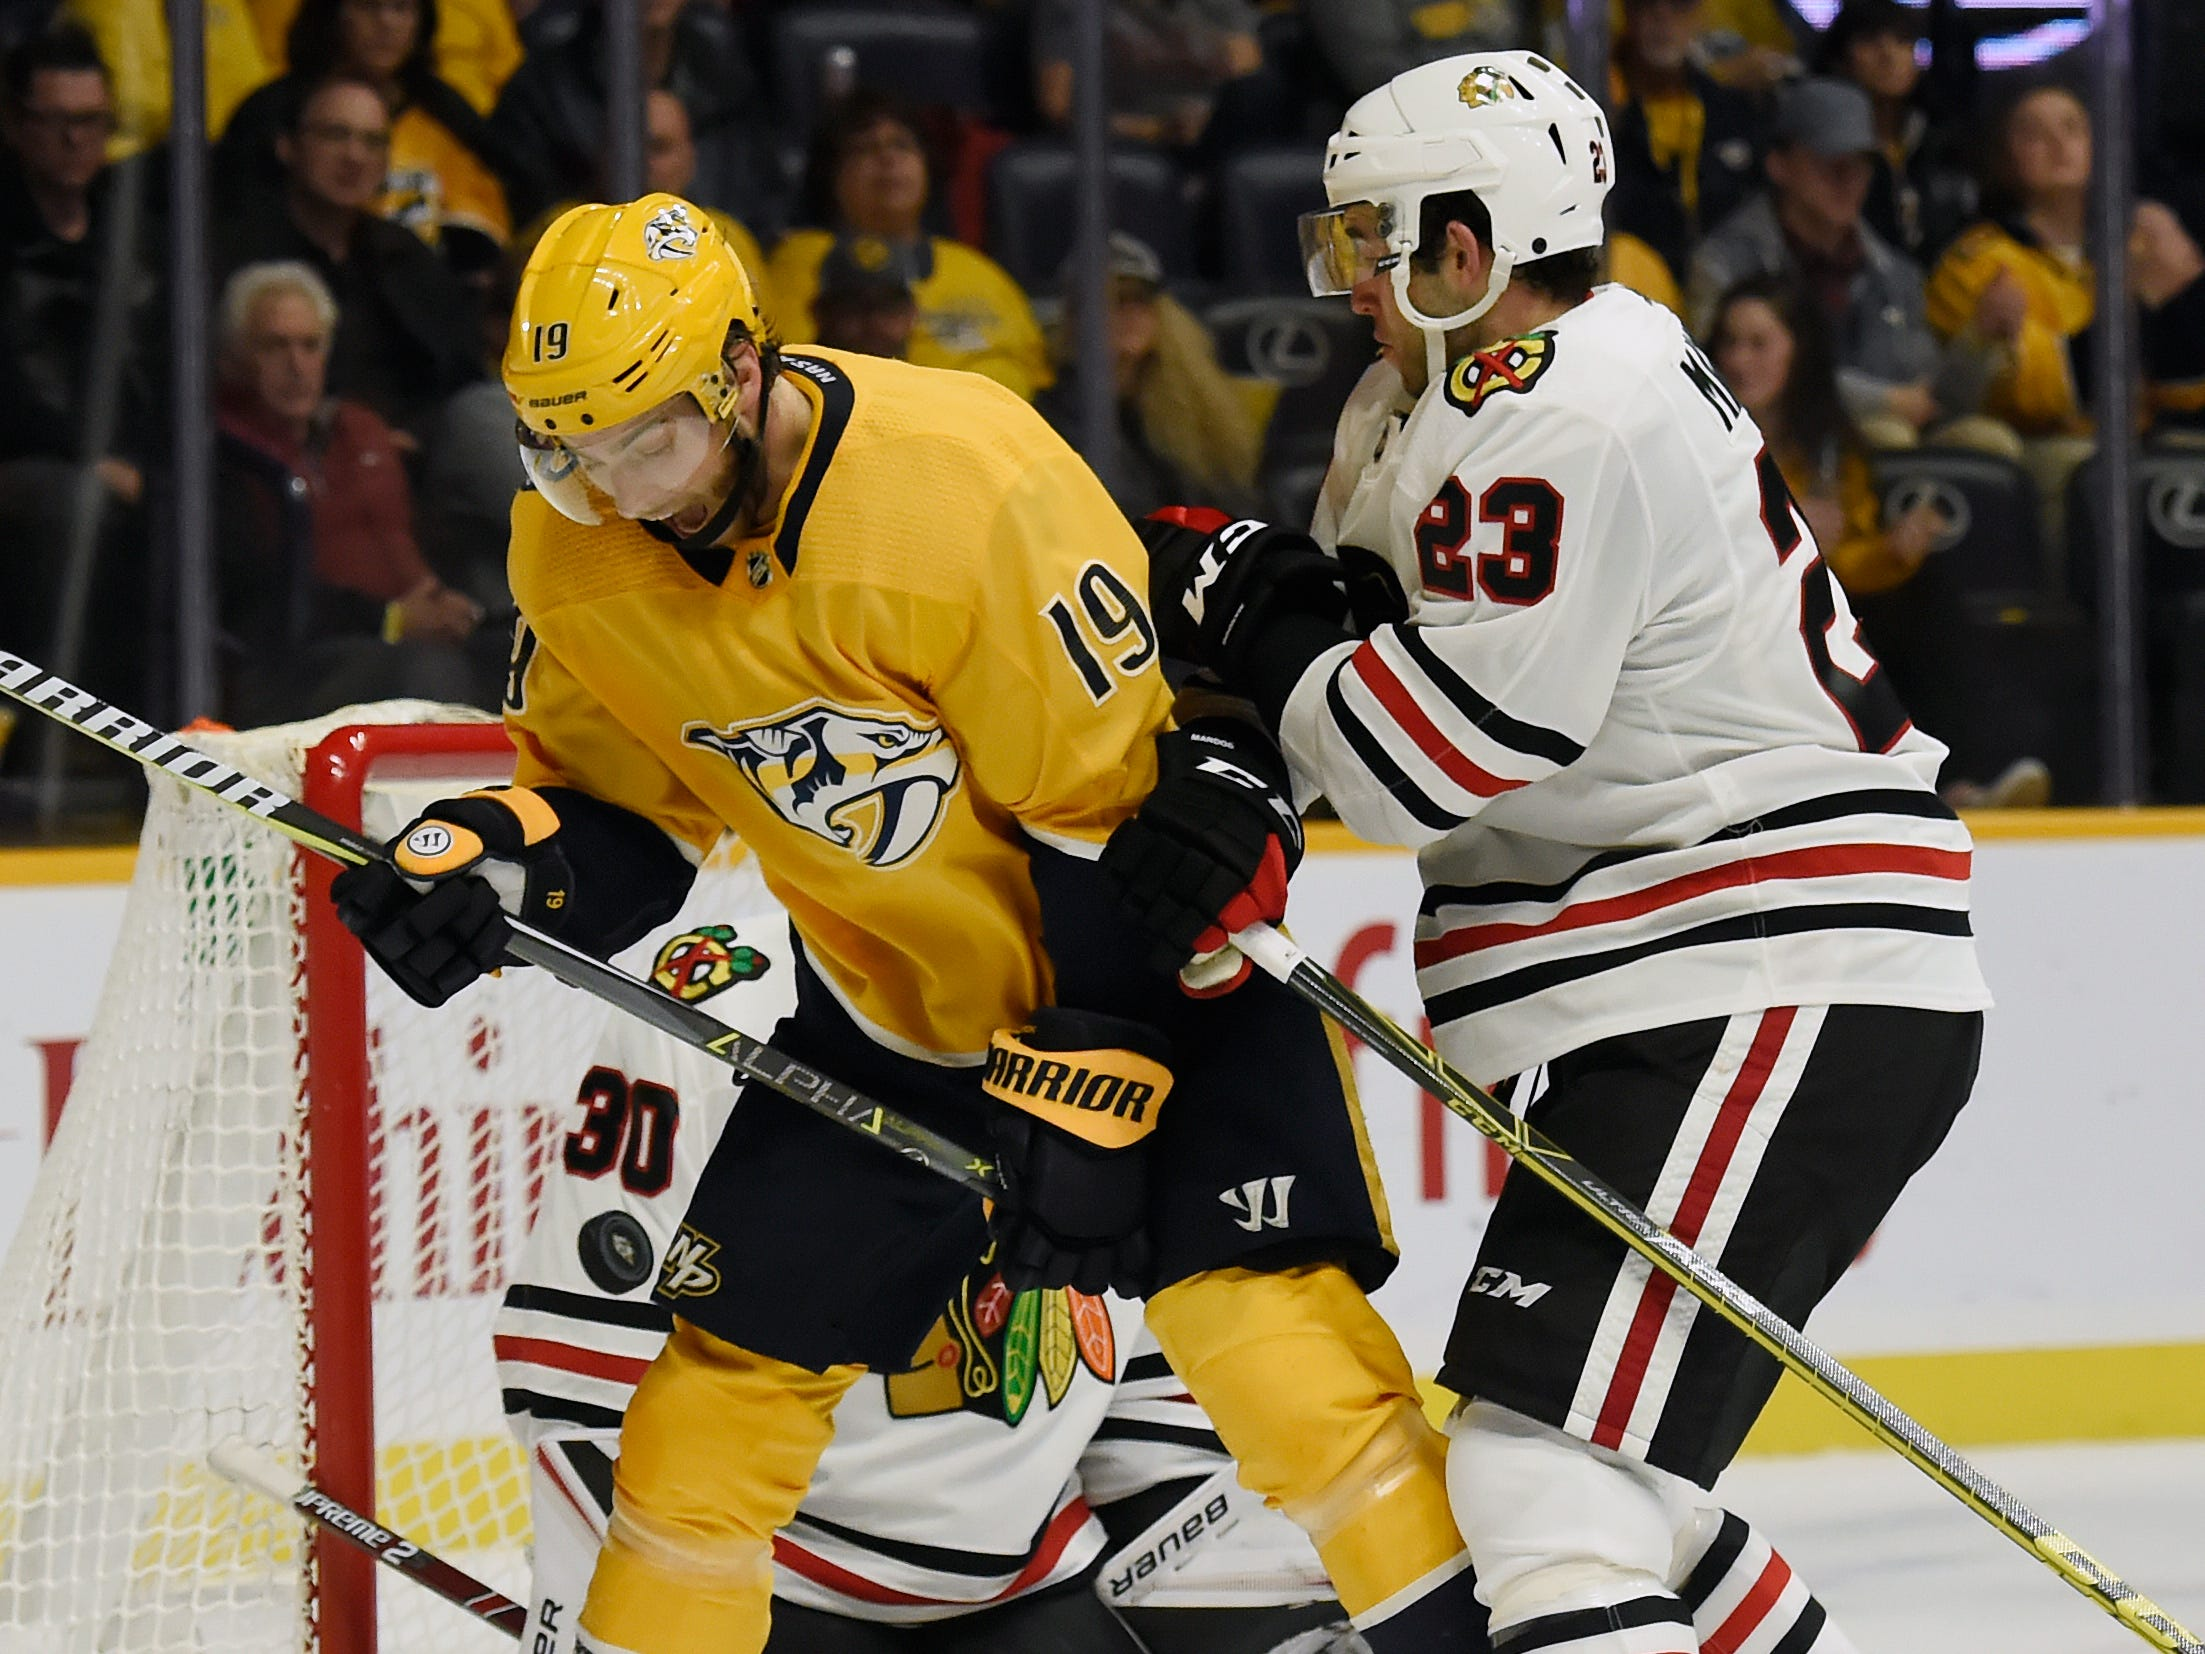 Nashville Predators center Calle Jarnkrok (19) of Sweden, and Chicago Blackhawks defenseman Brandon Manning (23) battle for the puck during the second period of an NHL hockey game Saturday, Dec. 1, 2018, in Nashville, Tenn.